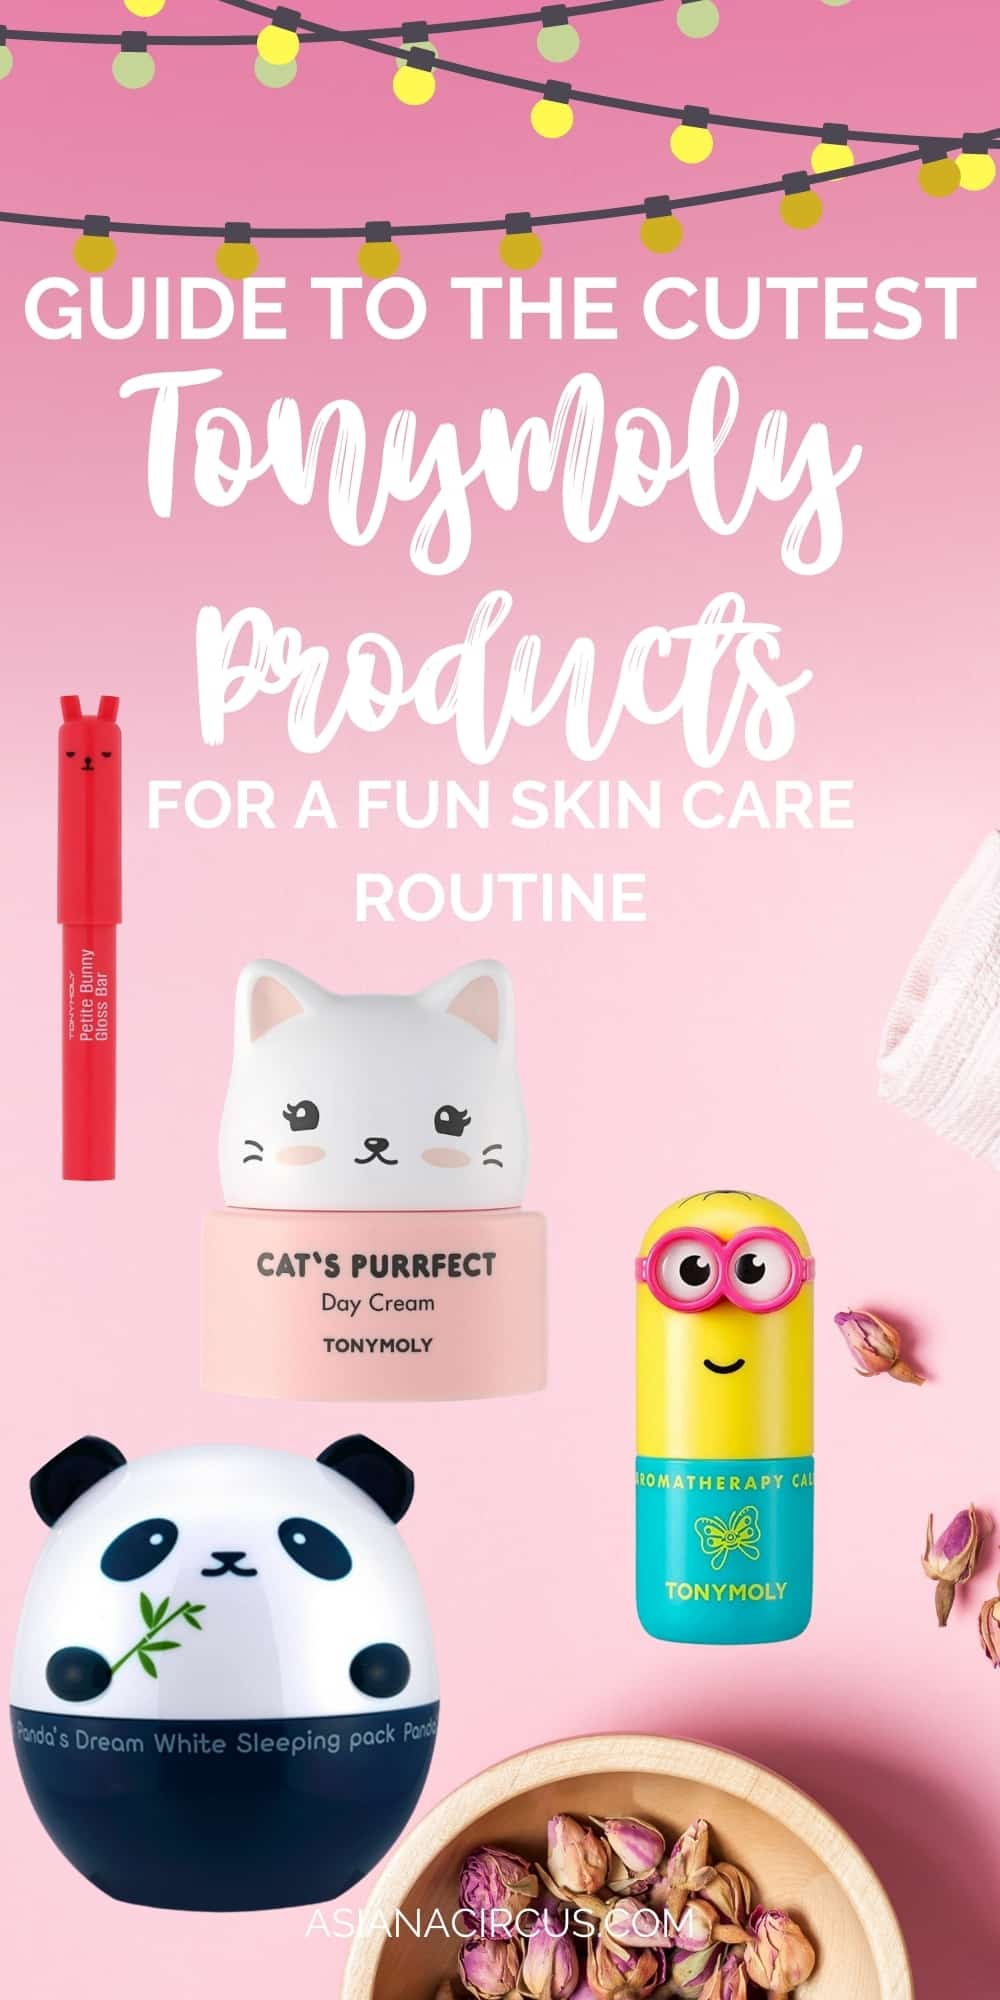 Guide to the cutest tony moly products